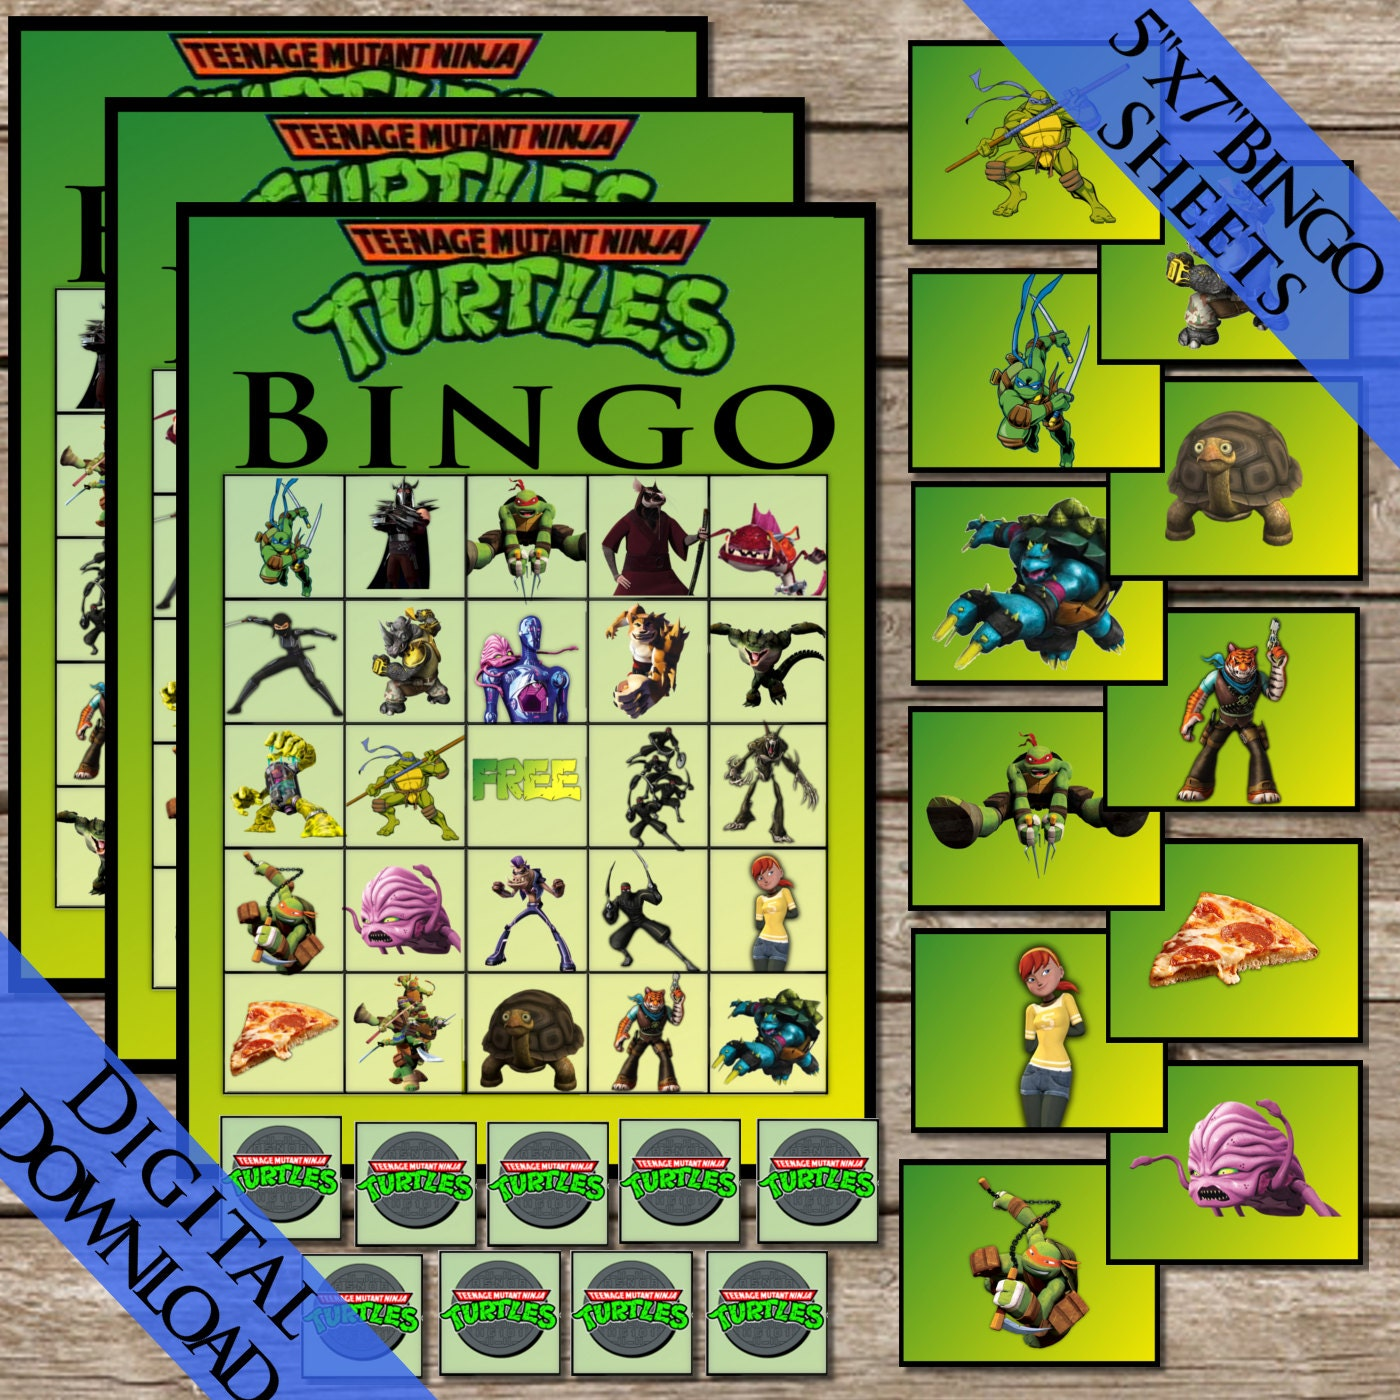 Ninja Turtles Bingo Digital Download Ninja Turtle Bingo